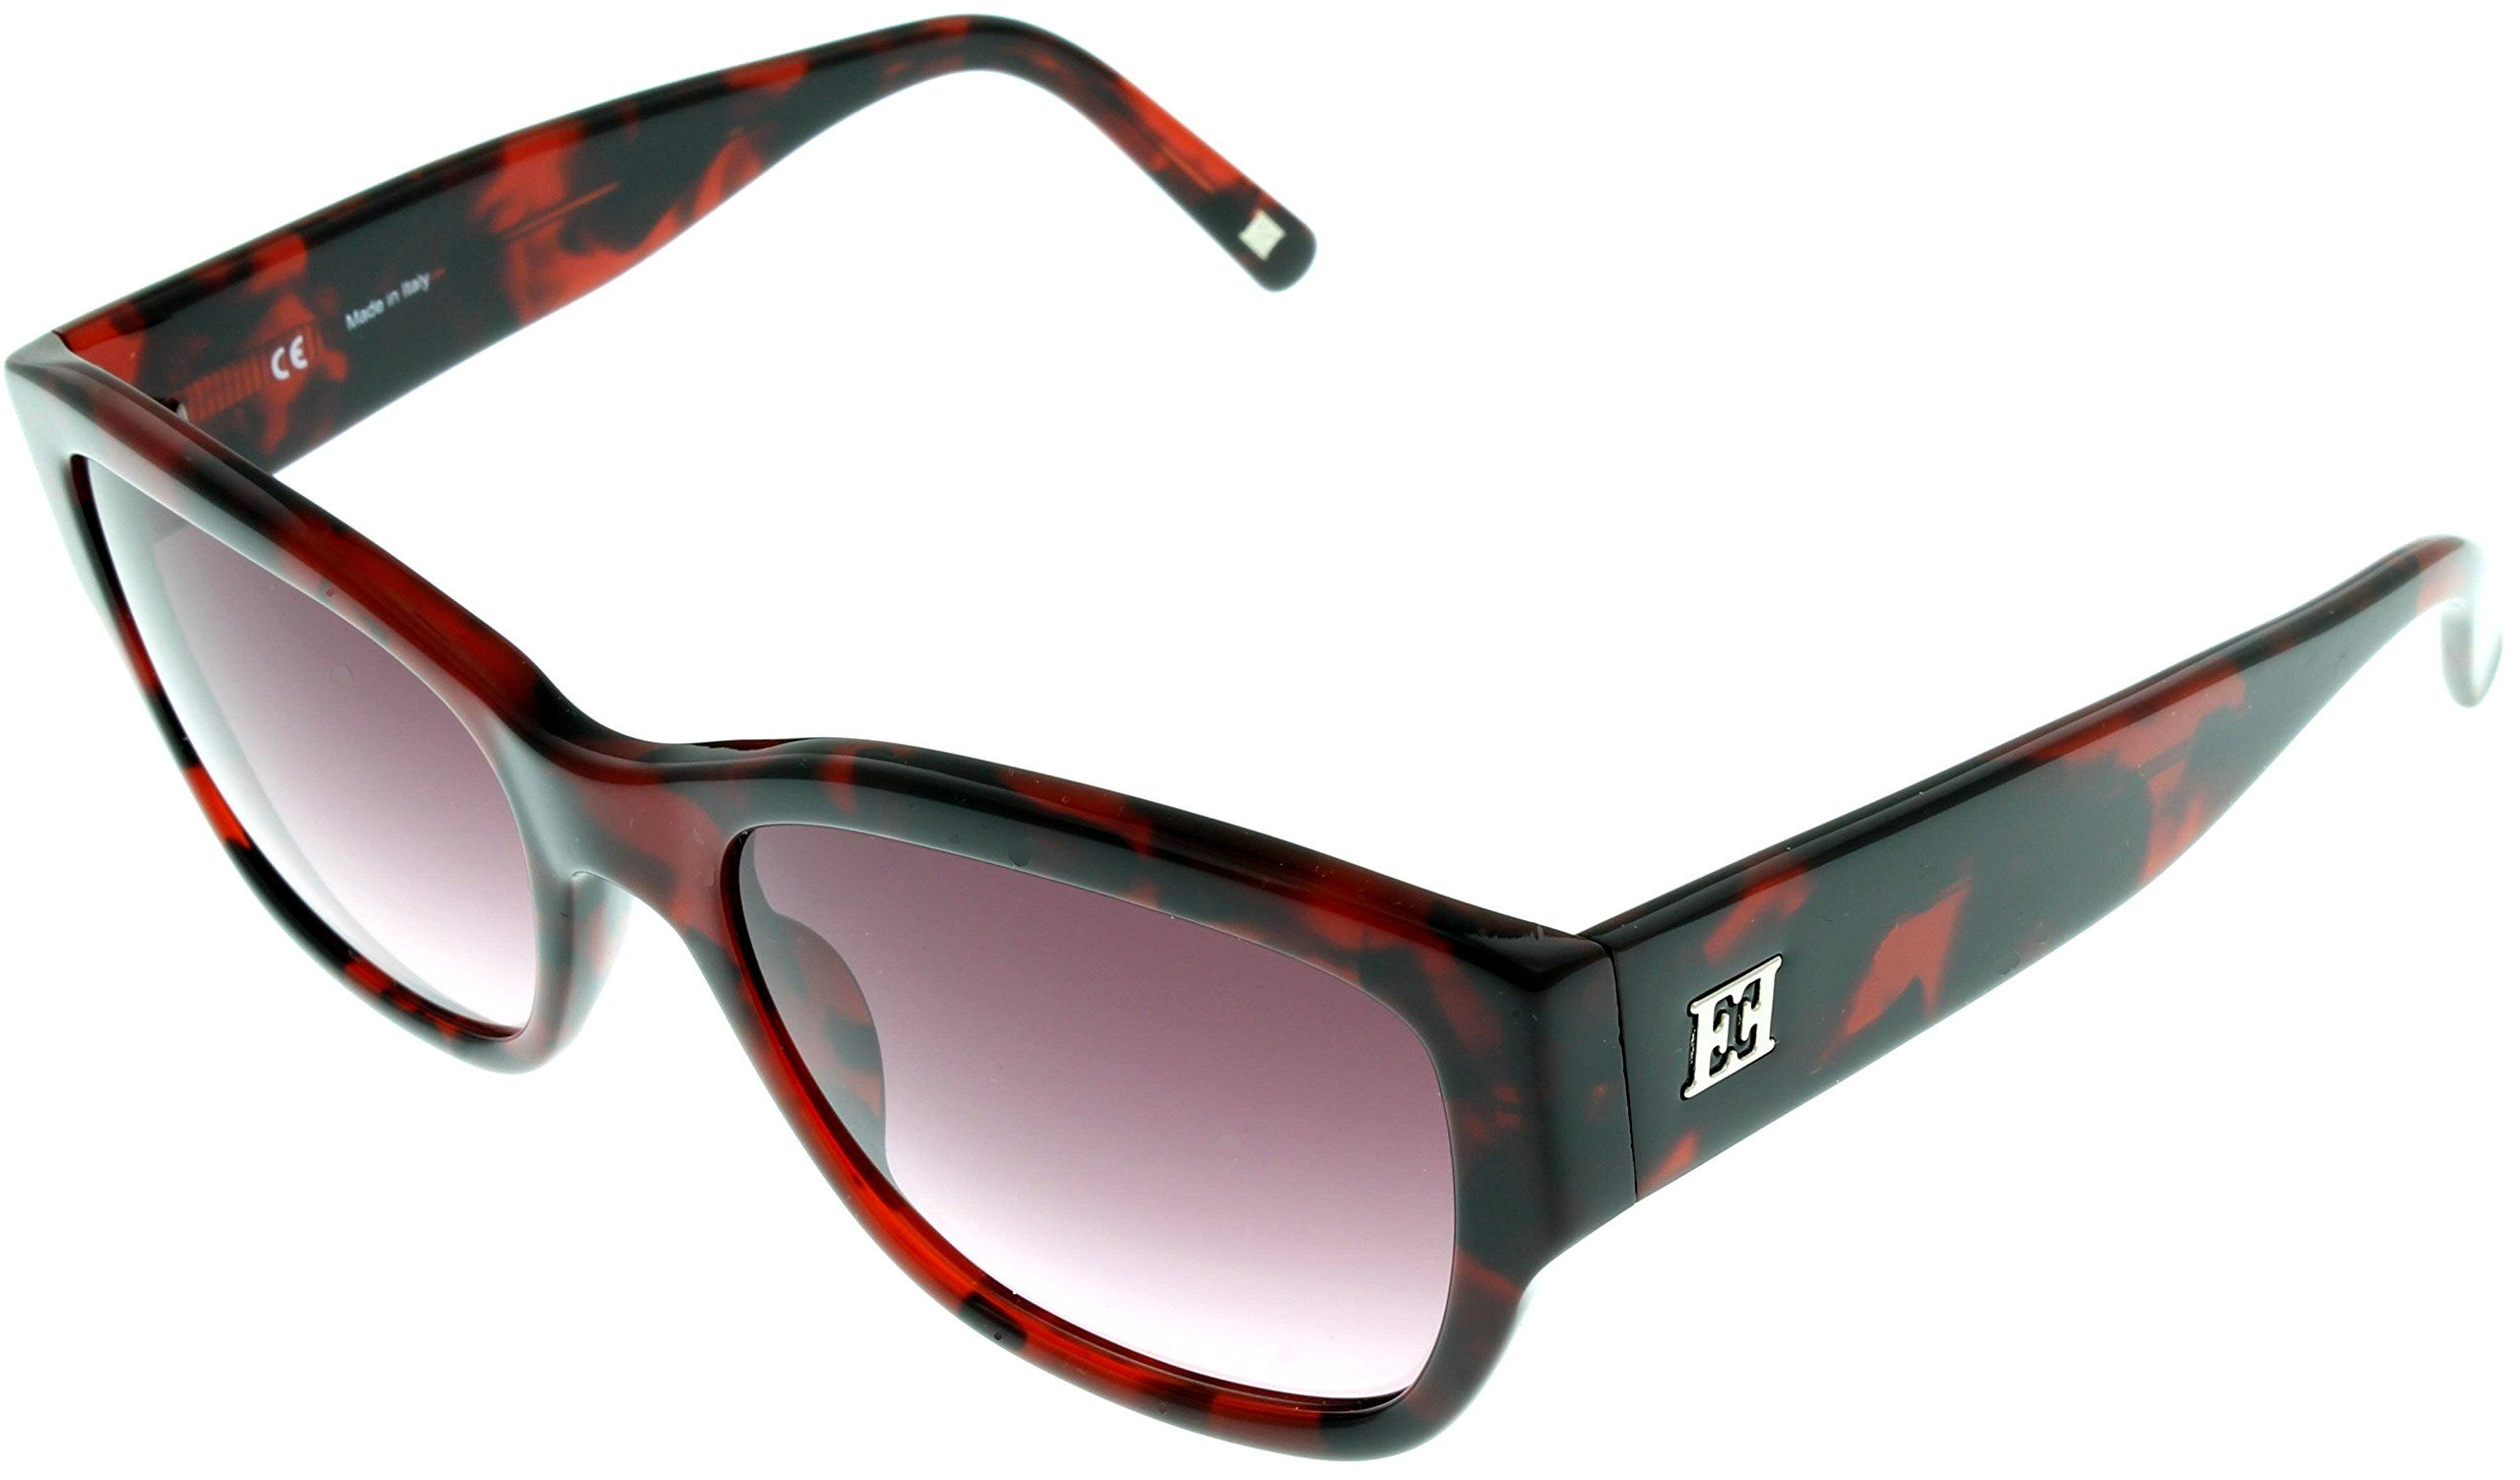 5d12a25ecde Size  Lens Bridge Temple  Made in  Italy. Find this Pin and more on Best Women  Sunglasses by fashionotalk. Escada Sunglasses Red Havana Womens SES 190 ...